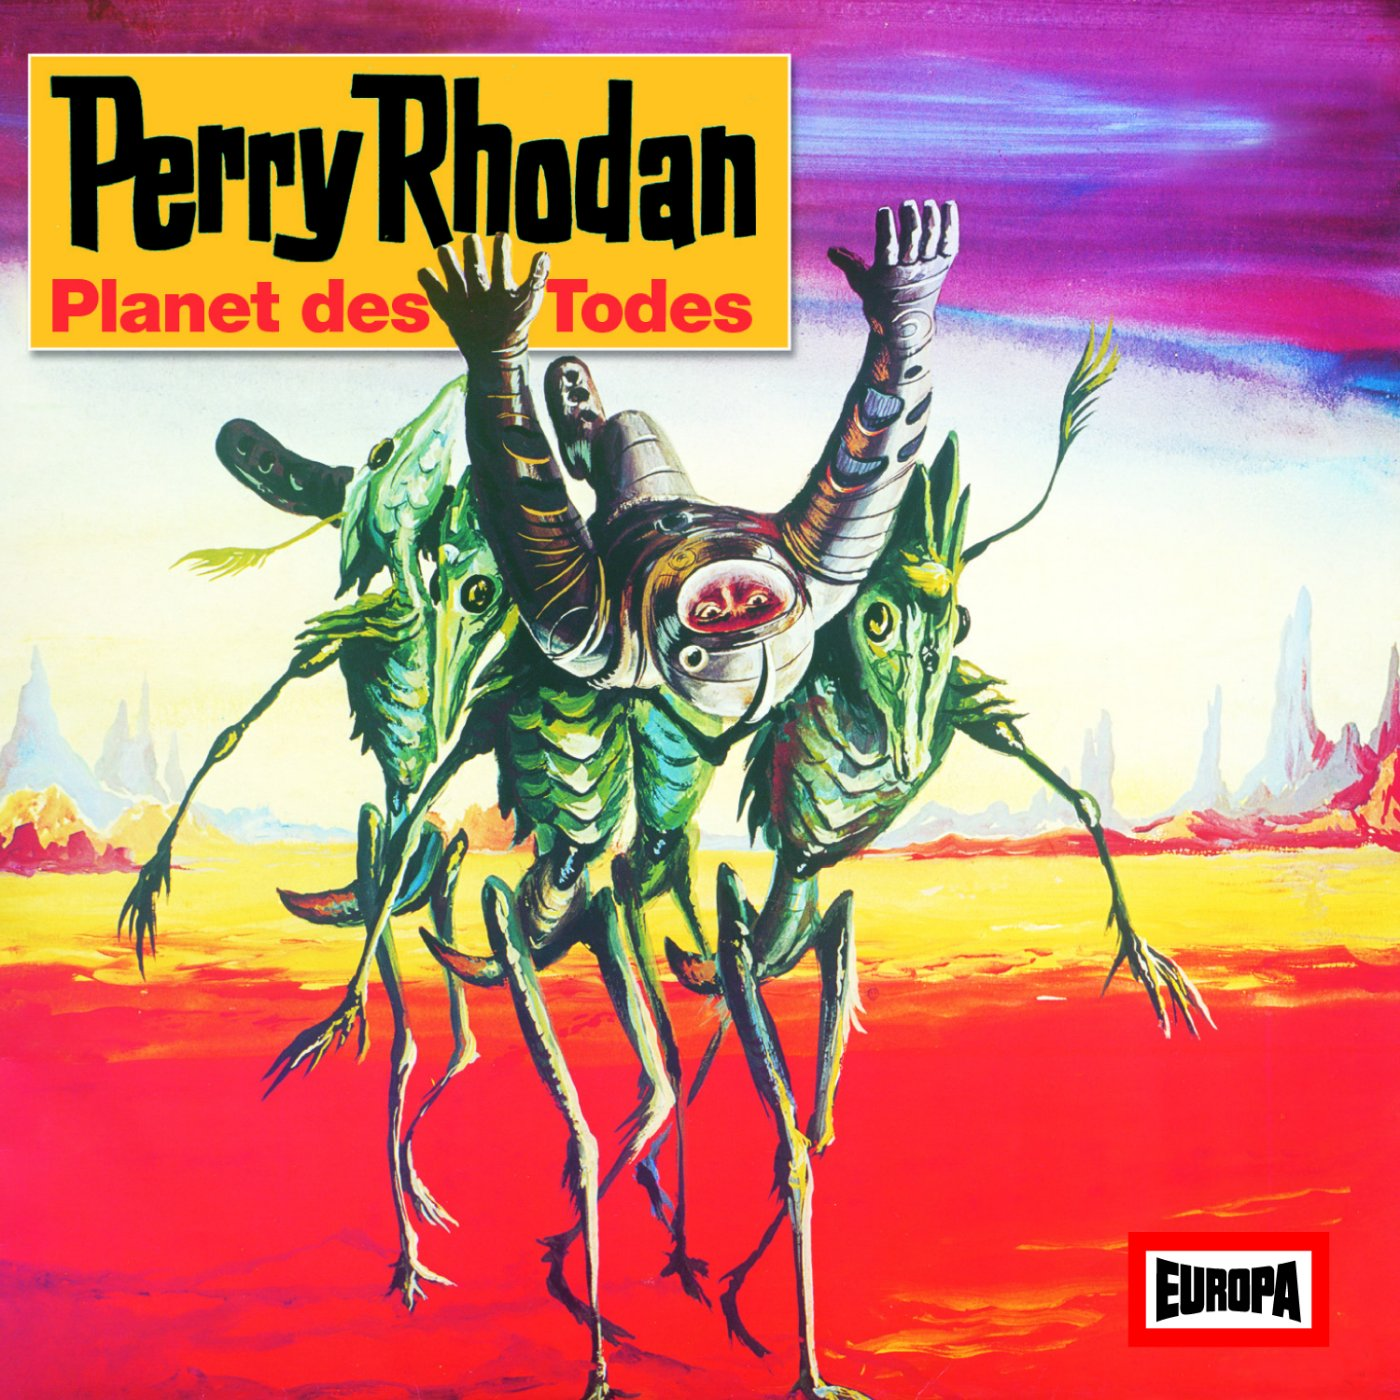 Perry Rhodan: Planet des Todes